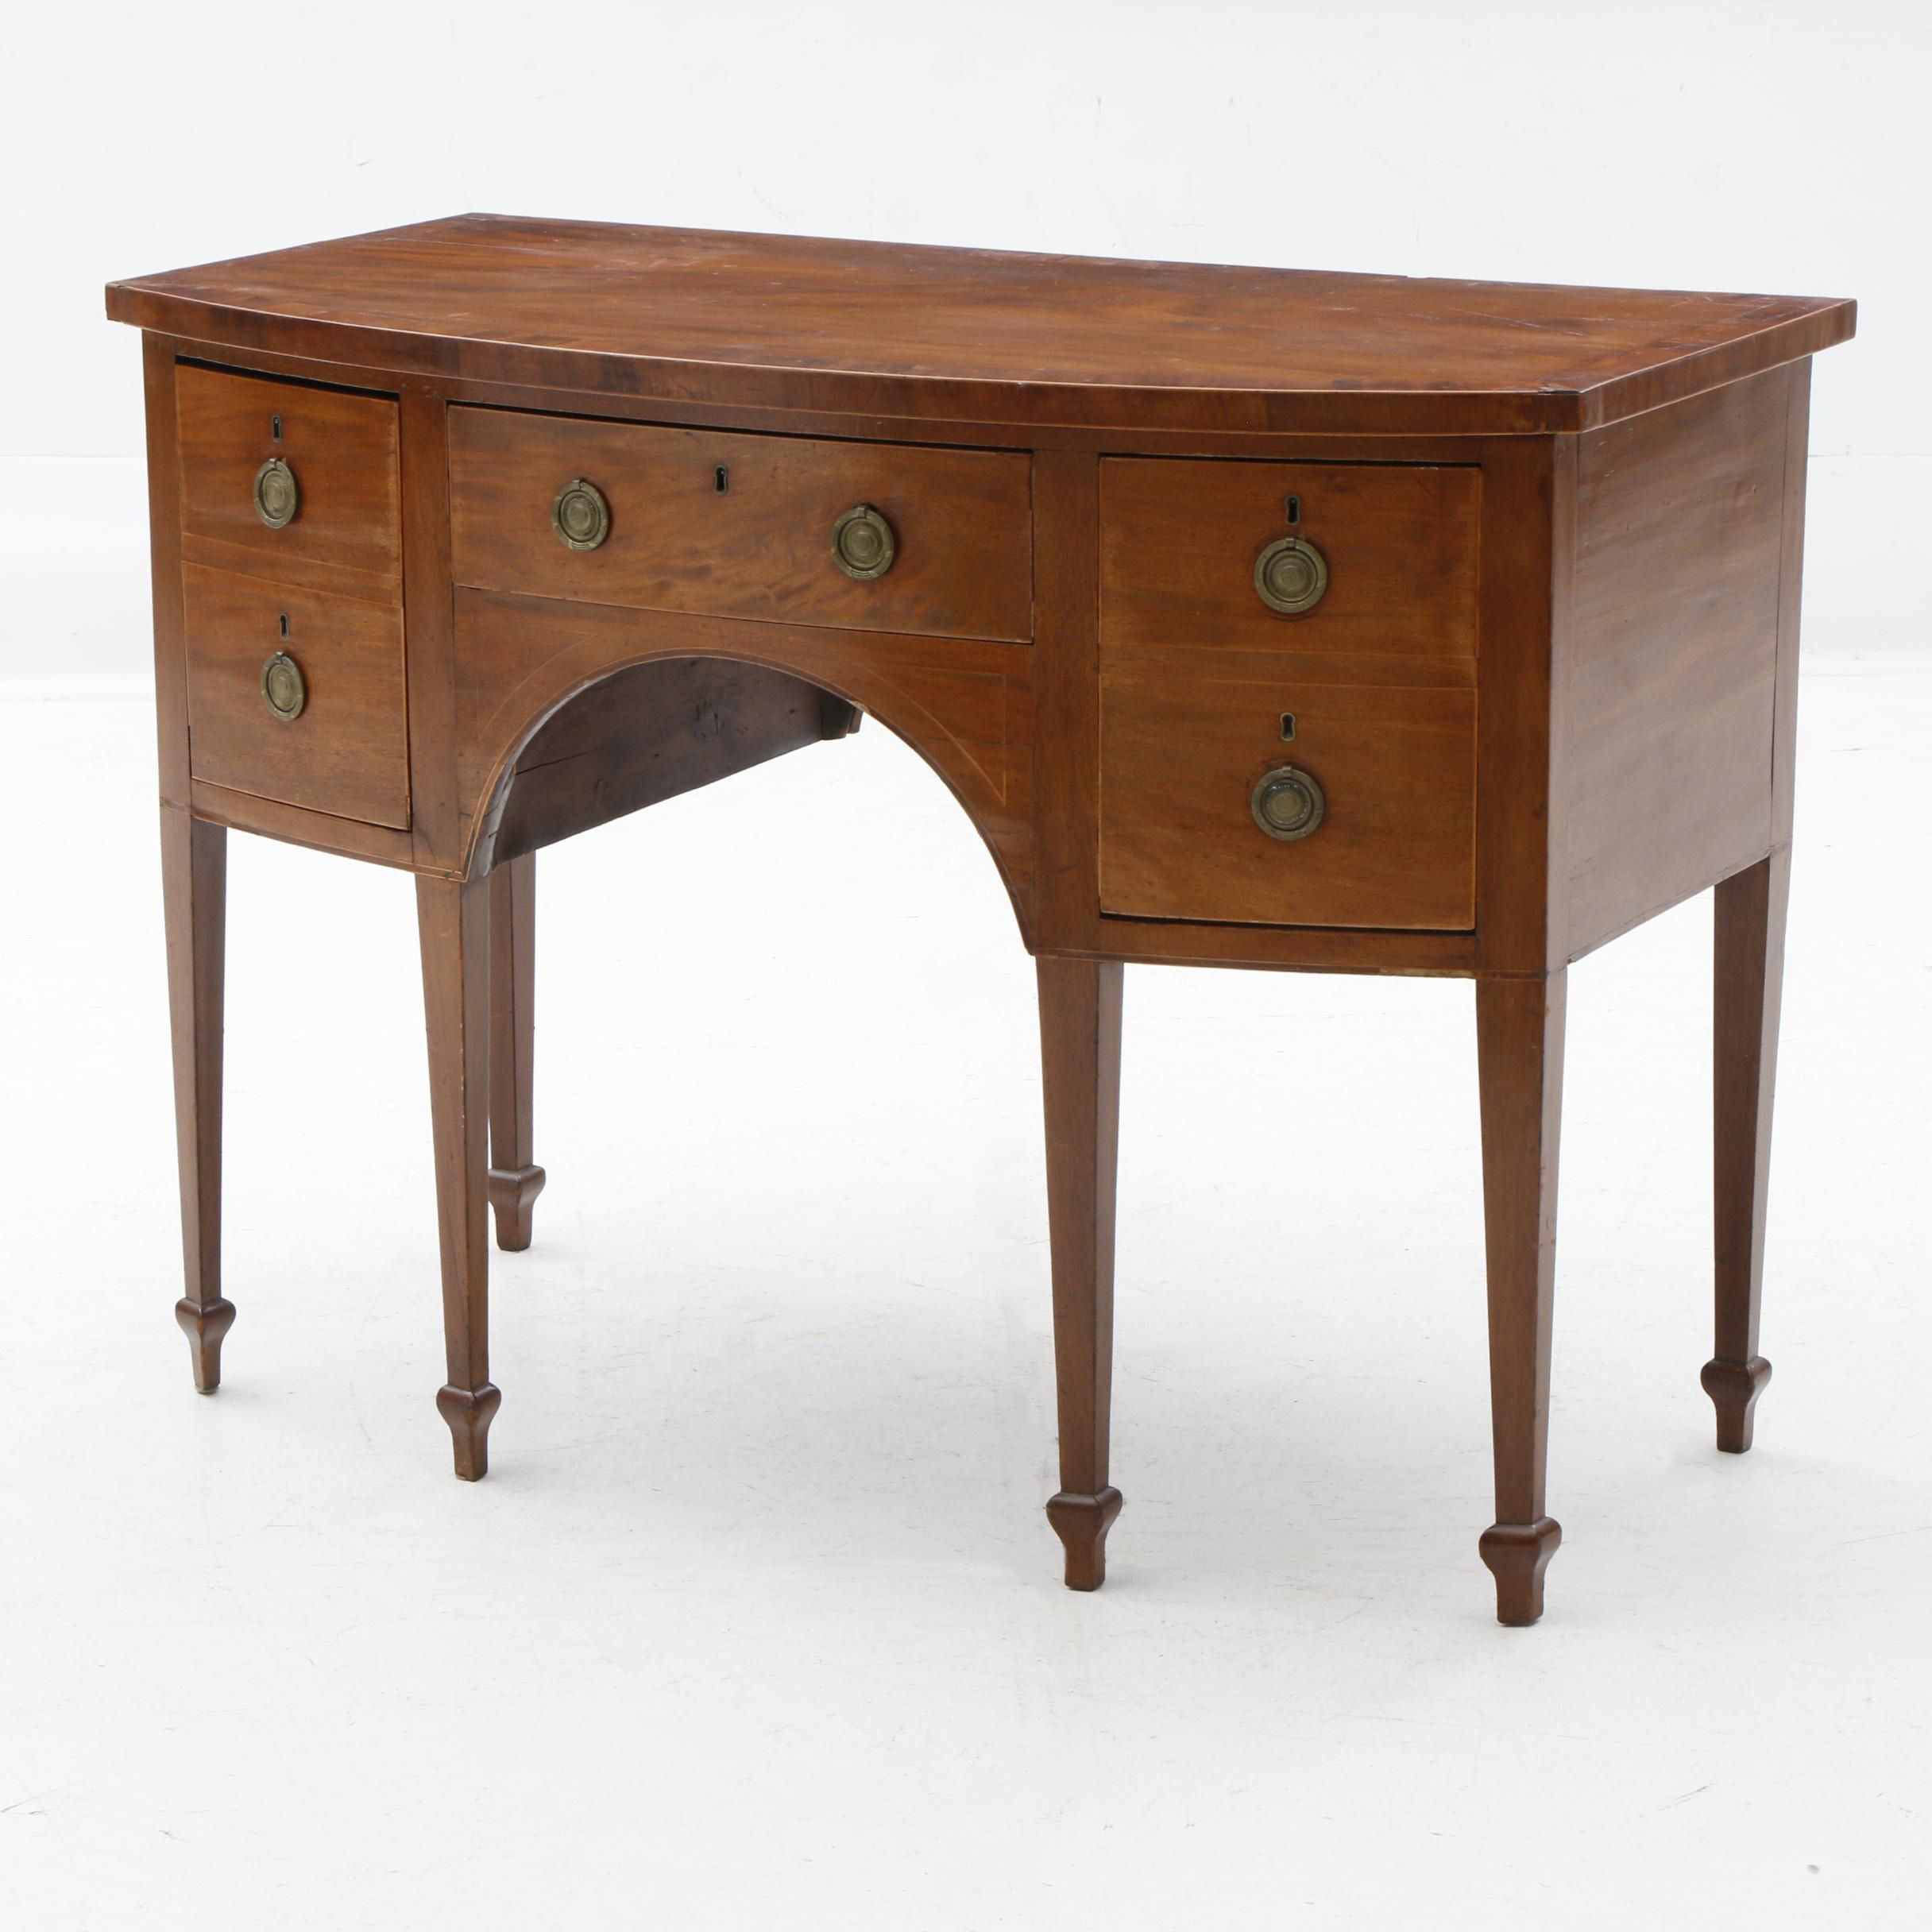 George III Mahogany Sideboard, Late 18th Century